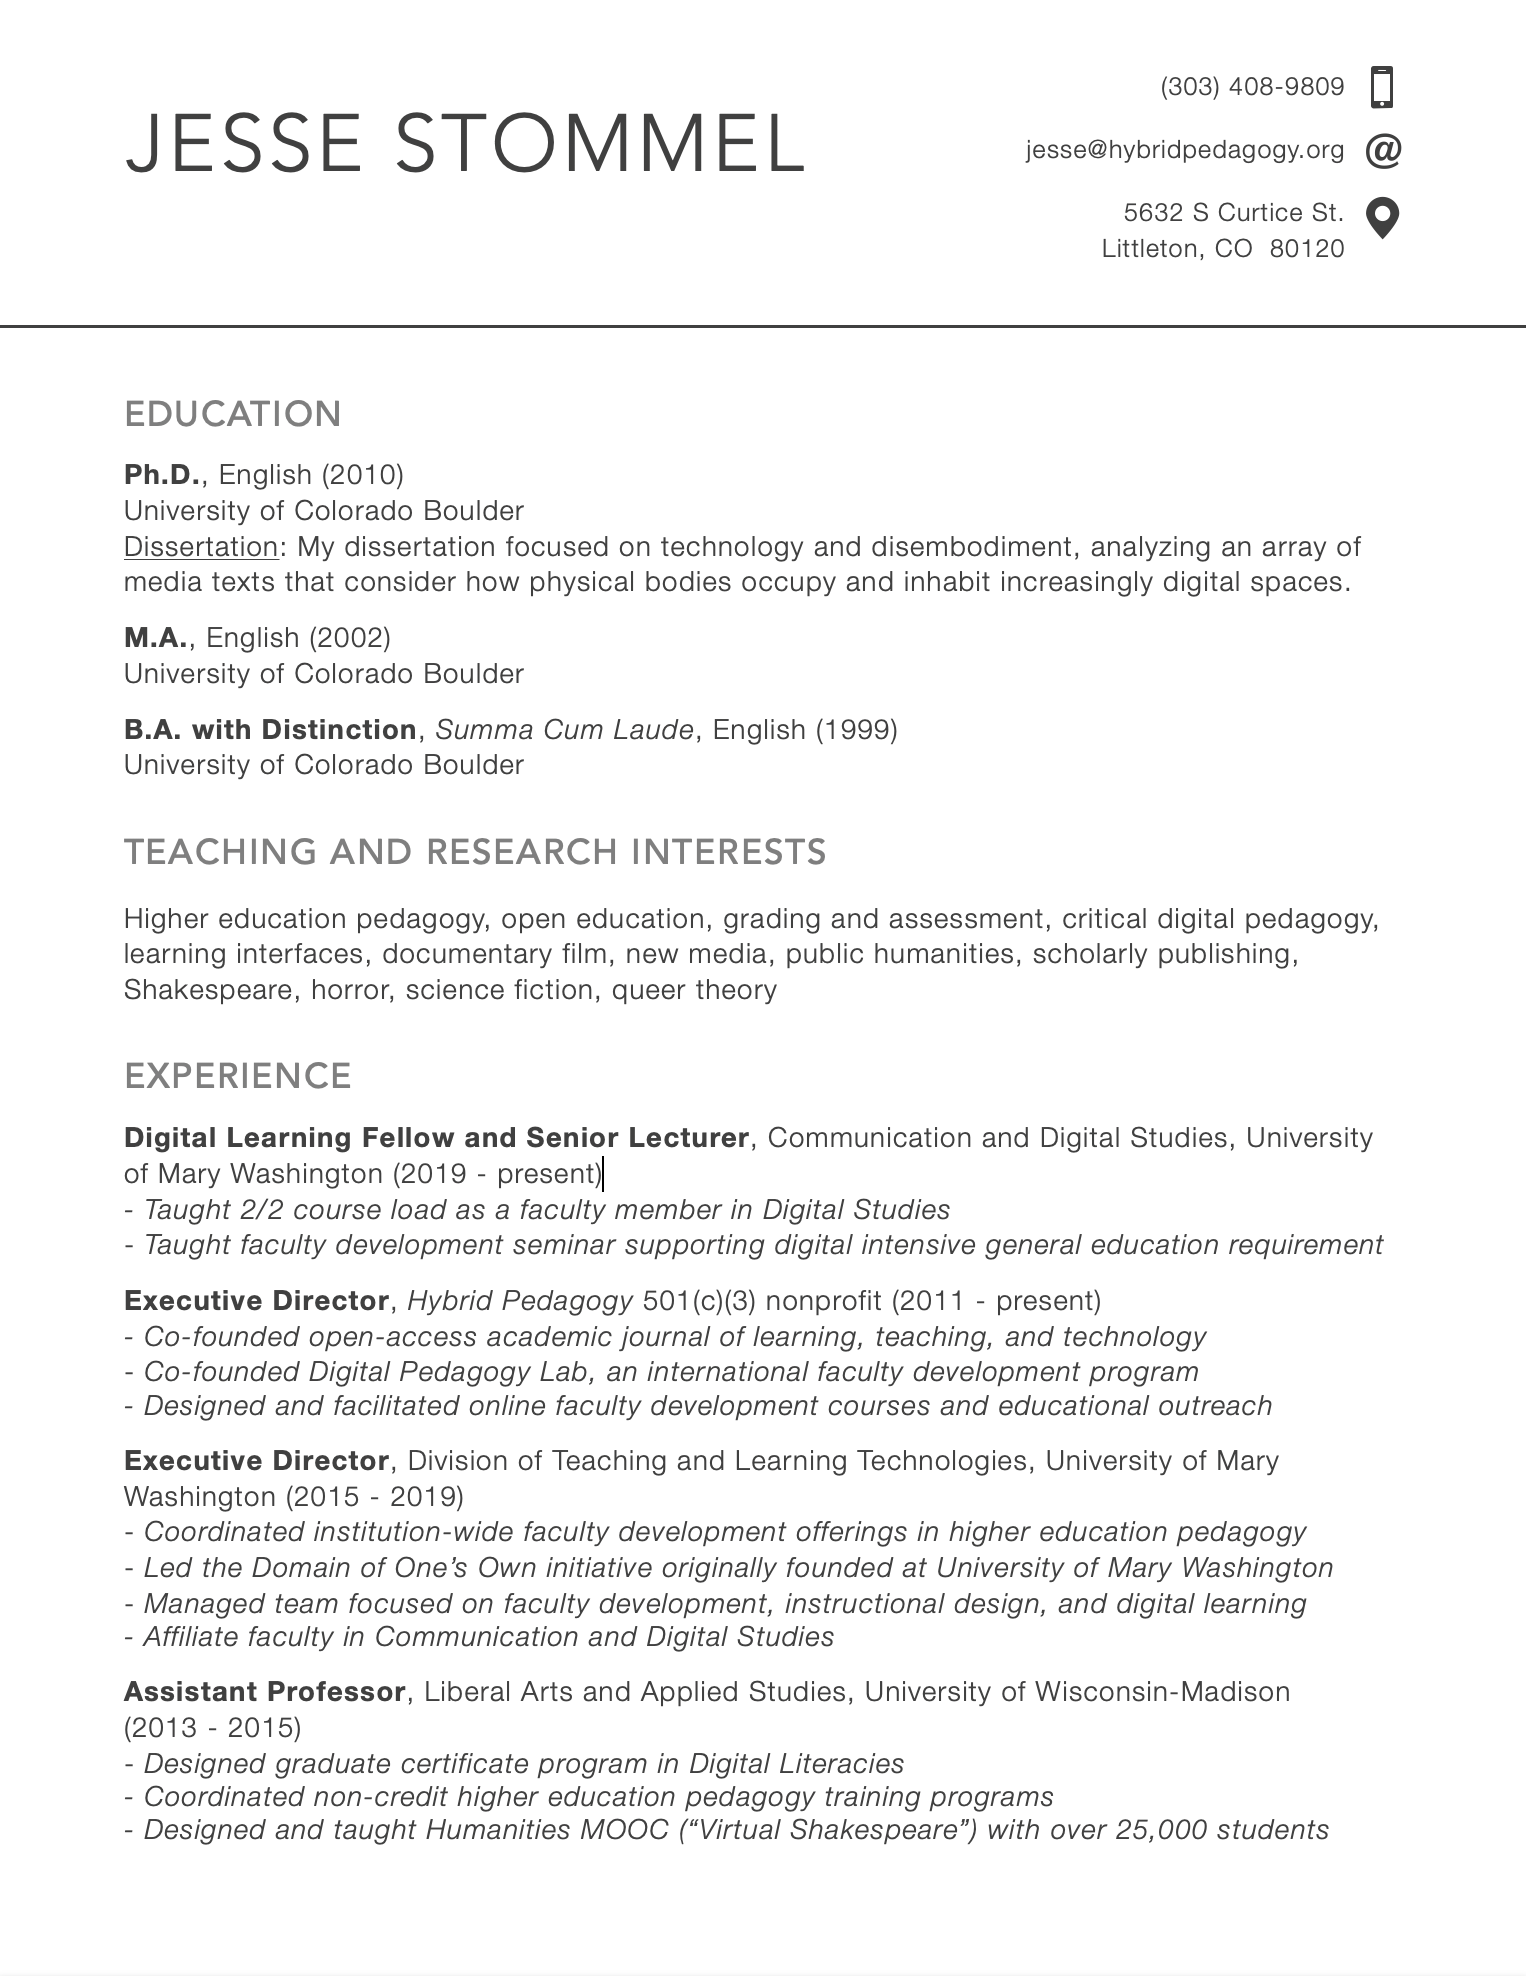 Image of first page of Jesse Stommel's CV